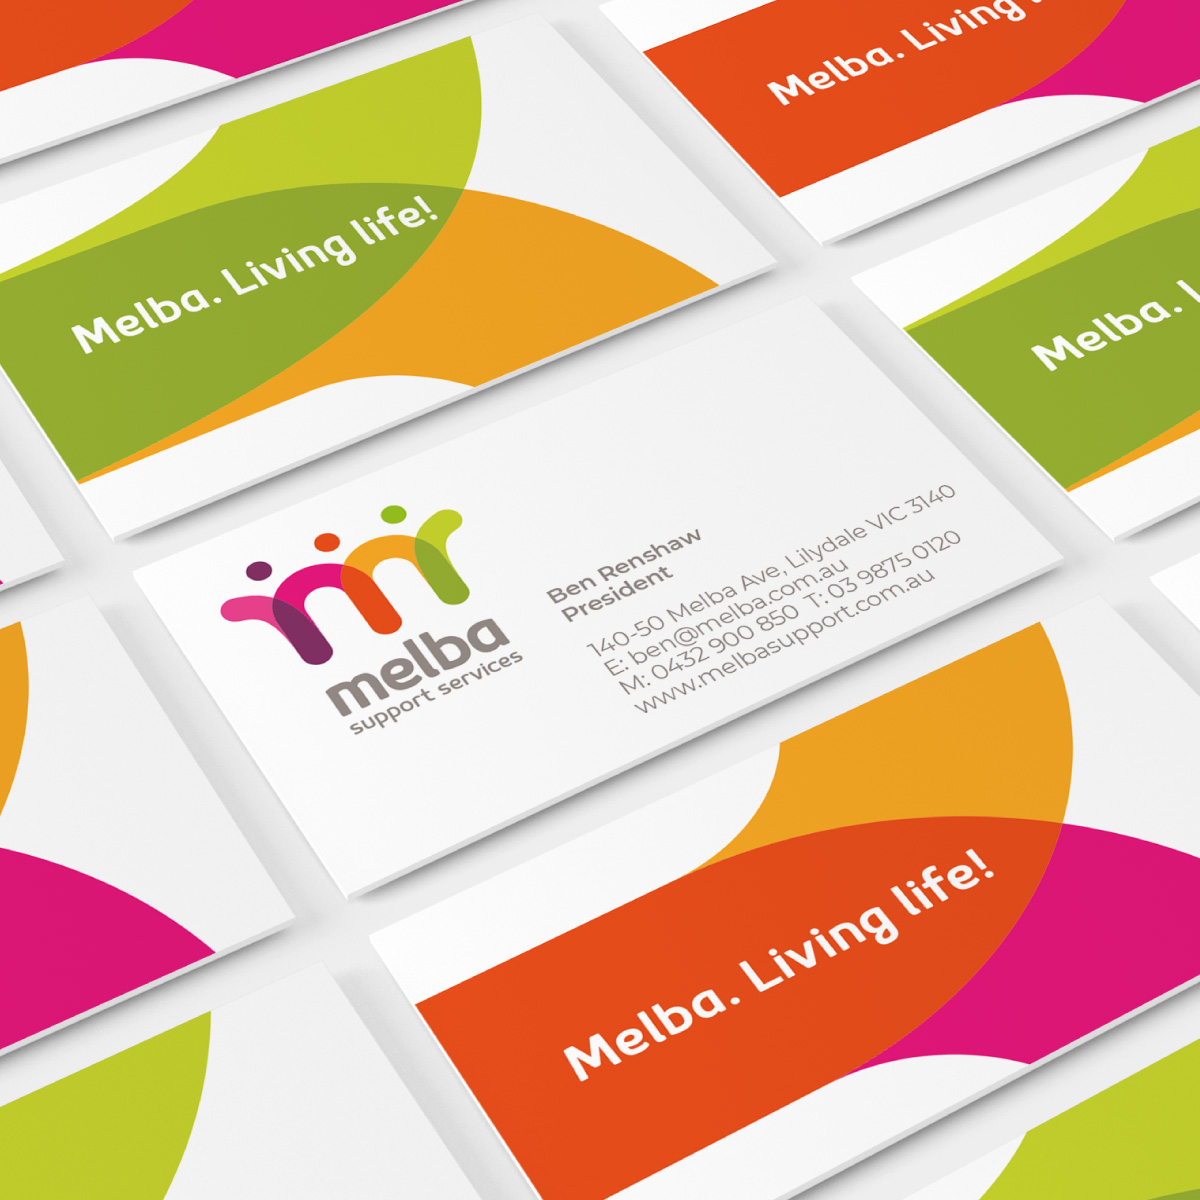 Melba Support Services Business Card Design